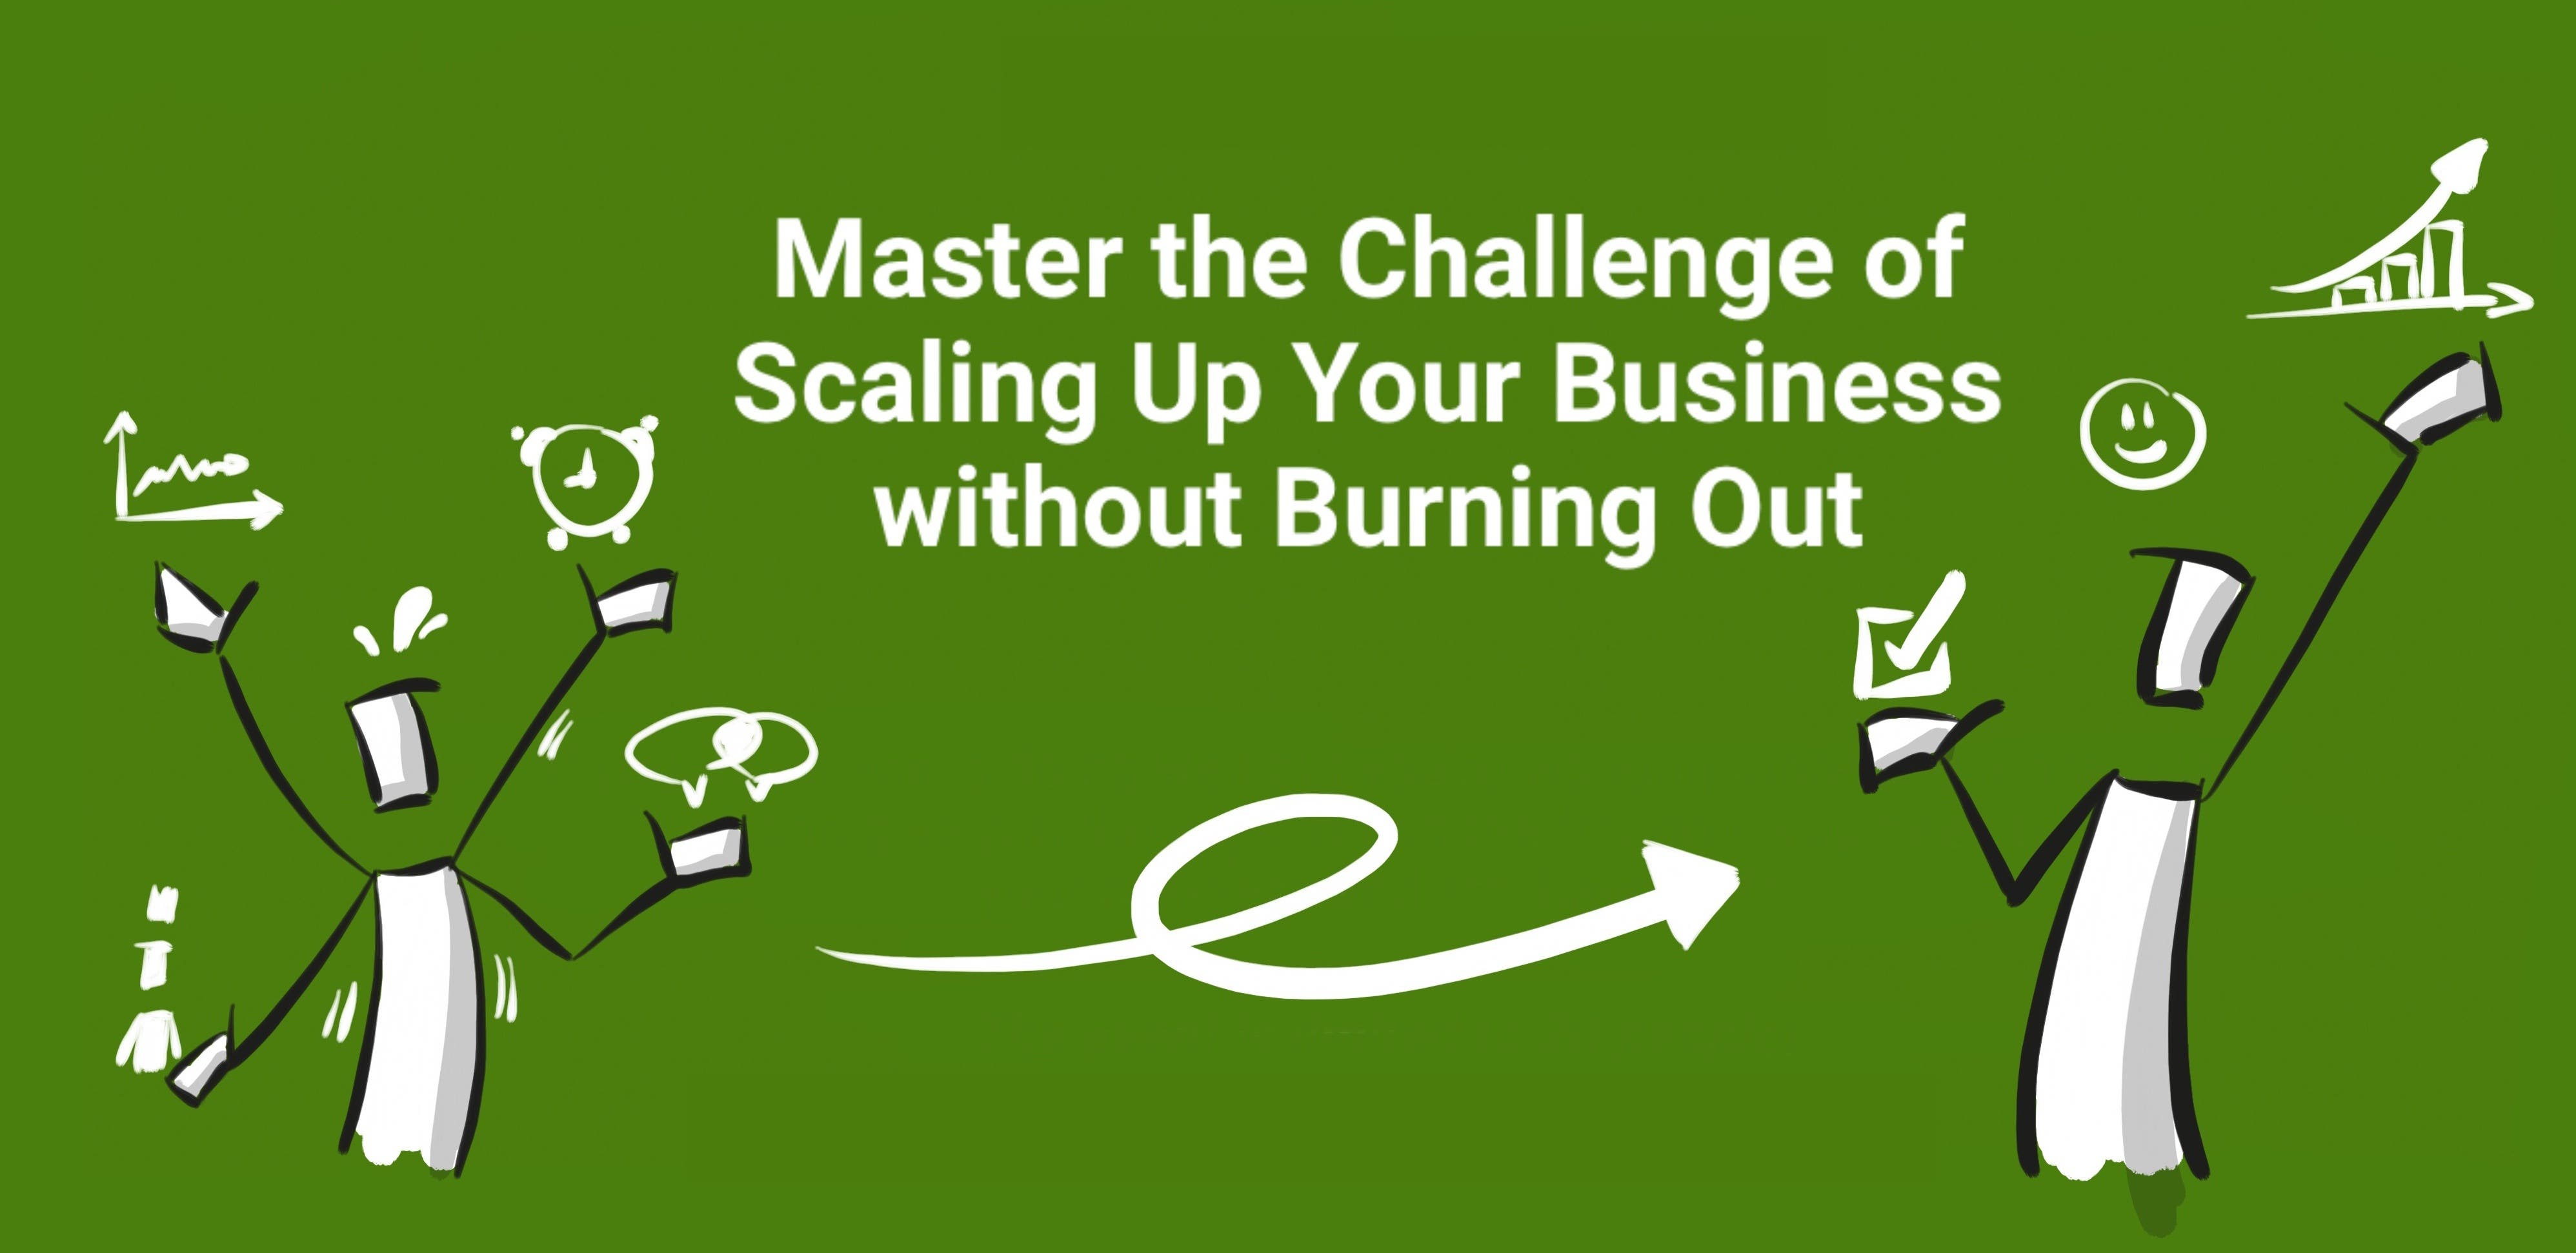 Scaling up without burning out